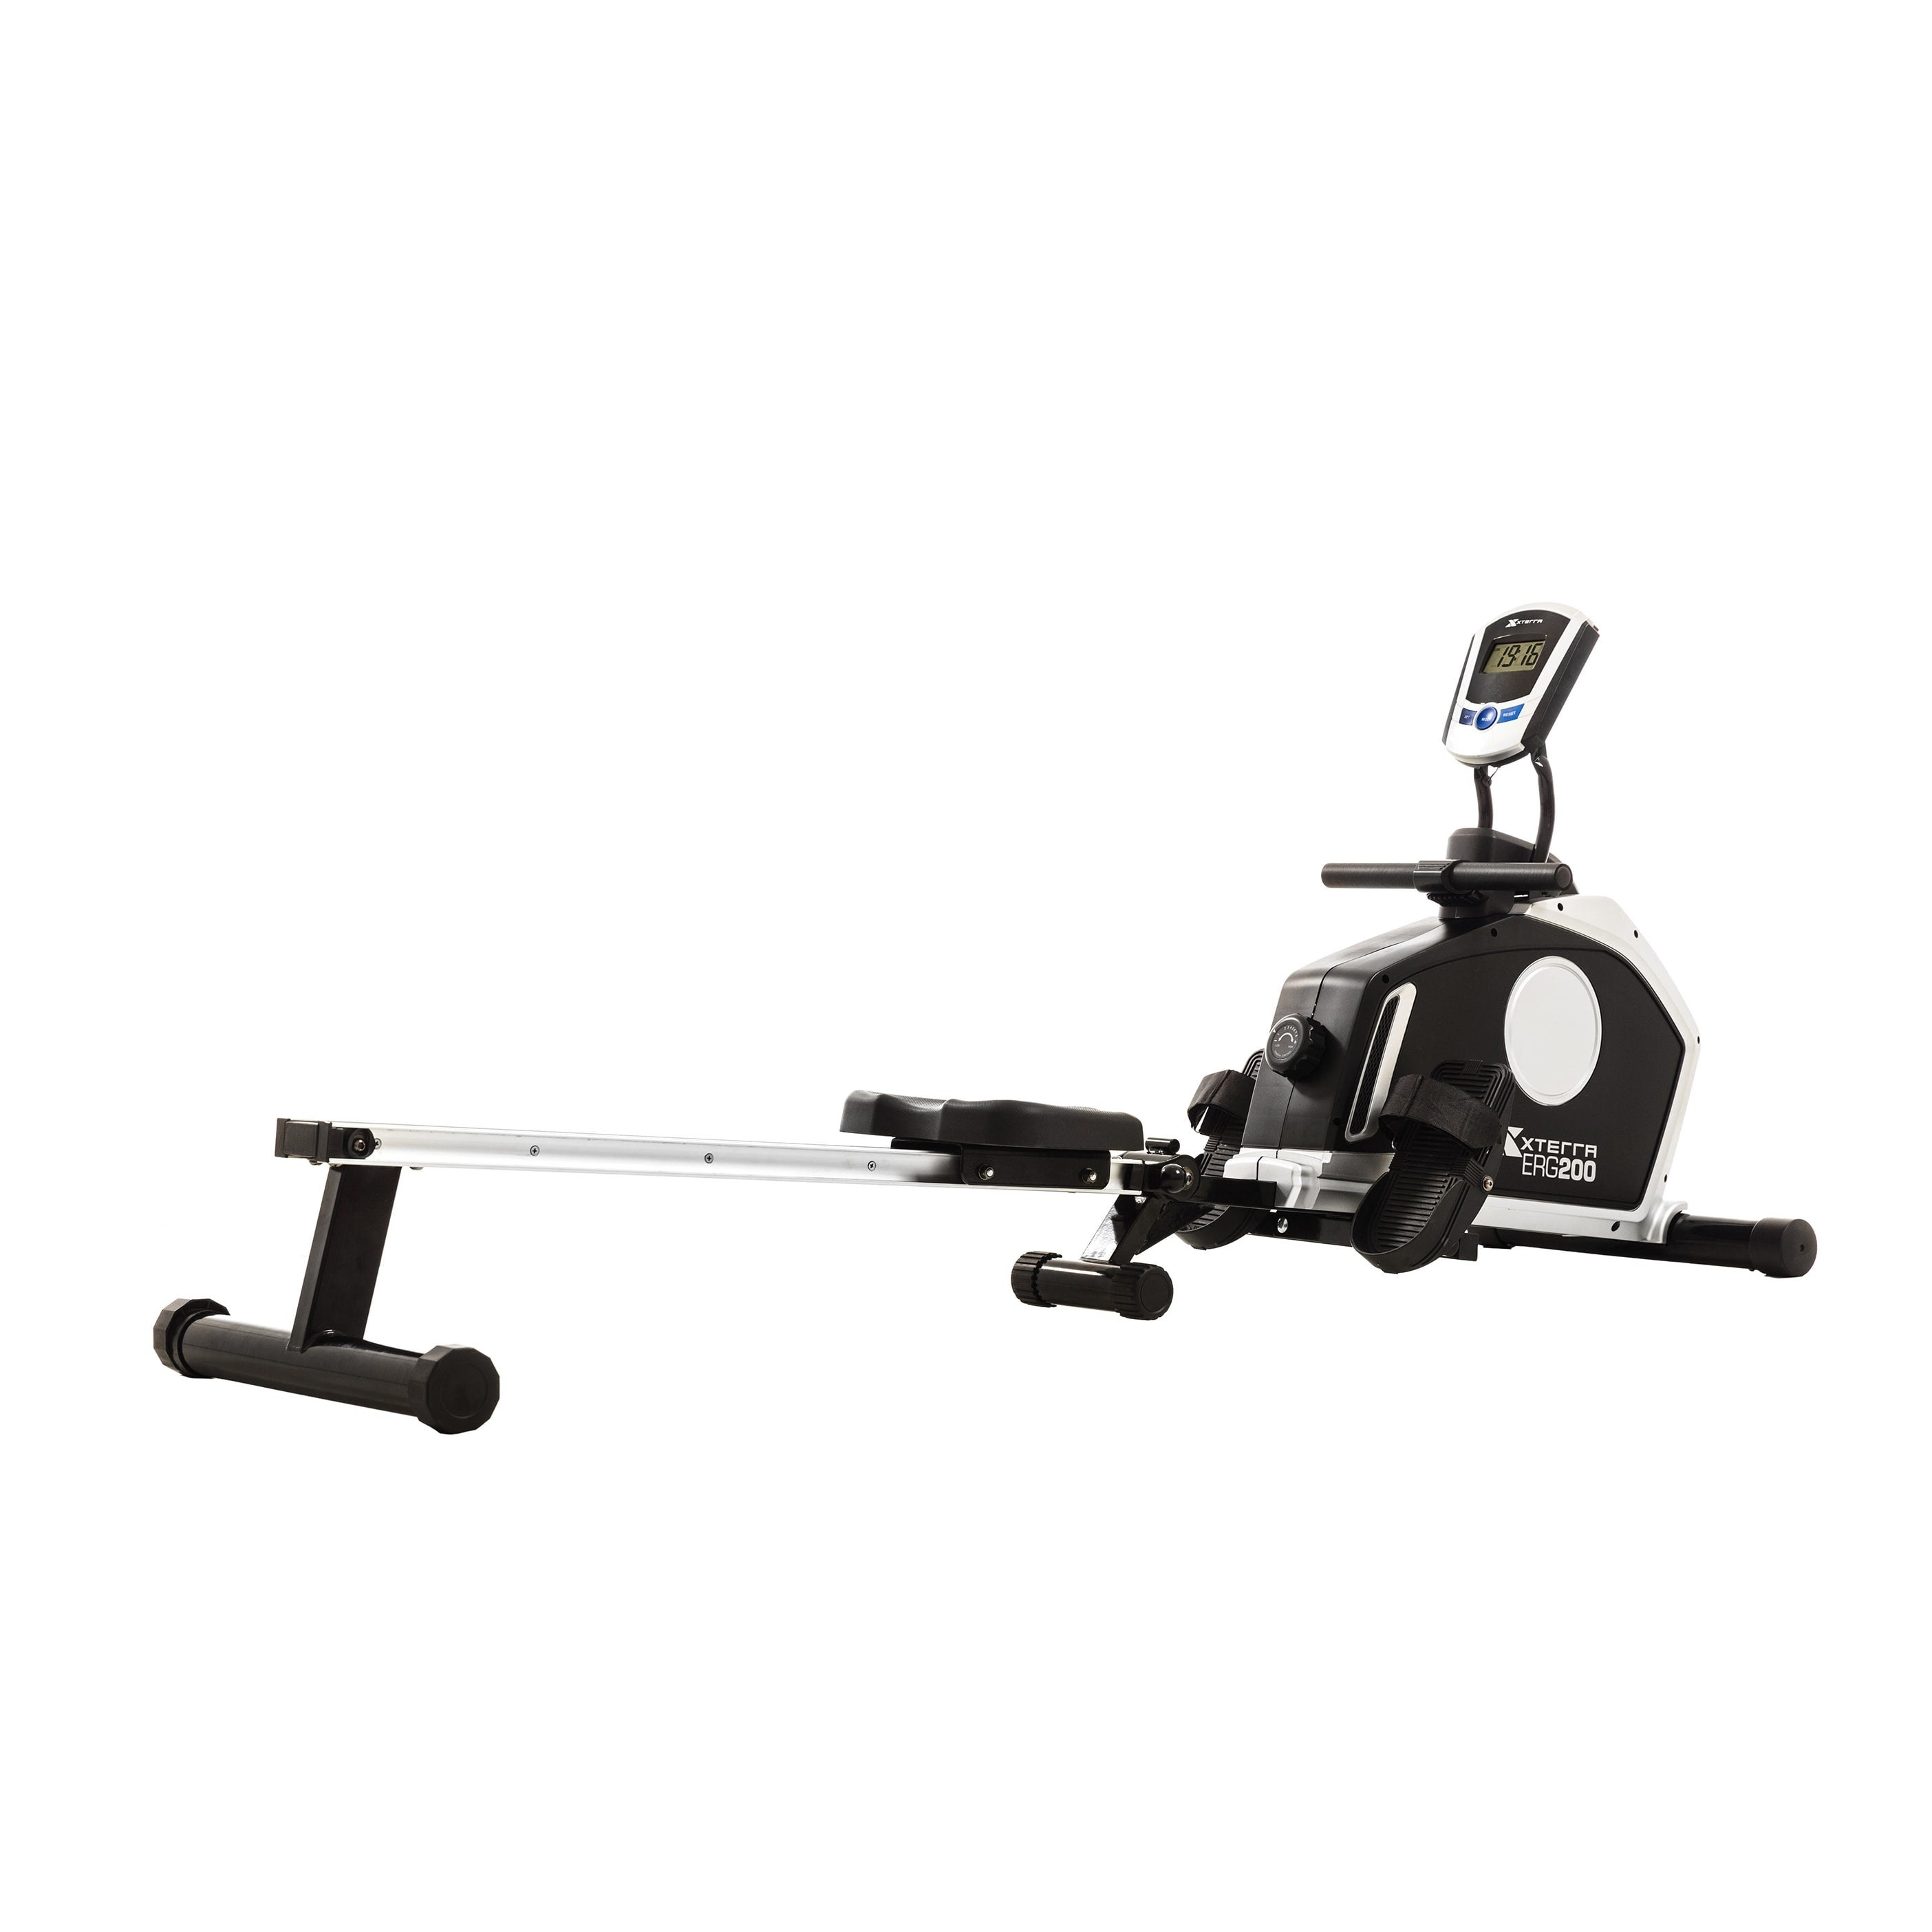 Rowing Machine For Sale >> Shop Xterra Erg200 Rowing Machine Black Free Shipping Today